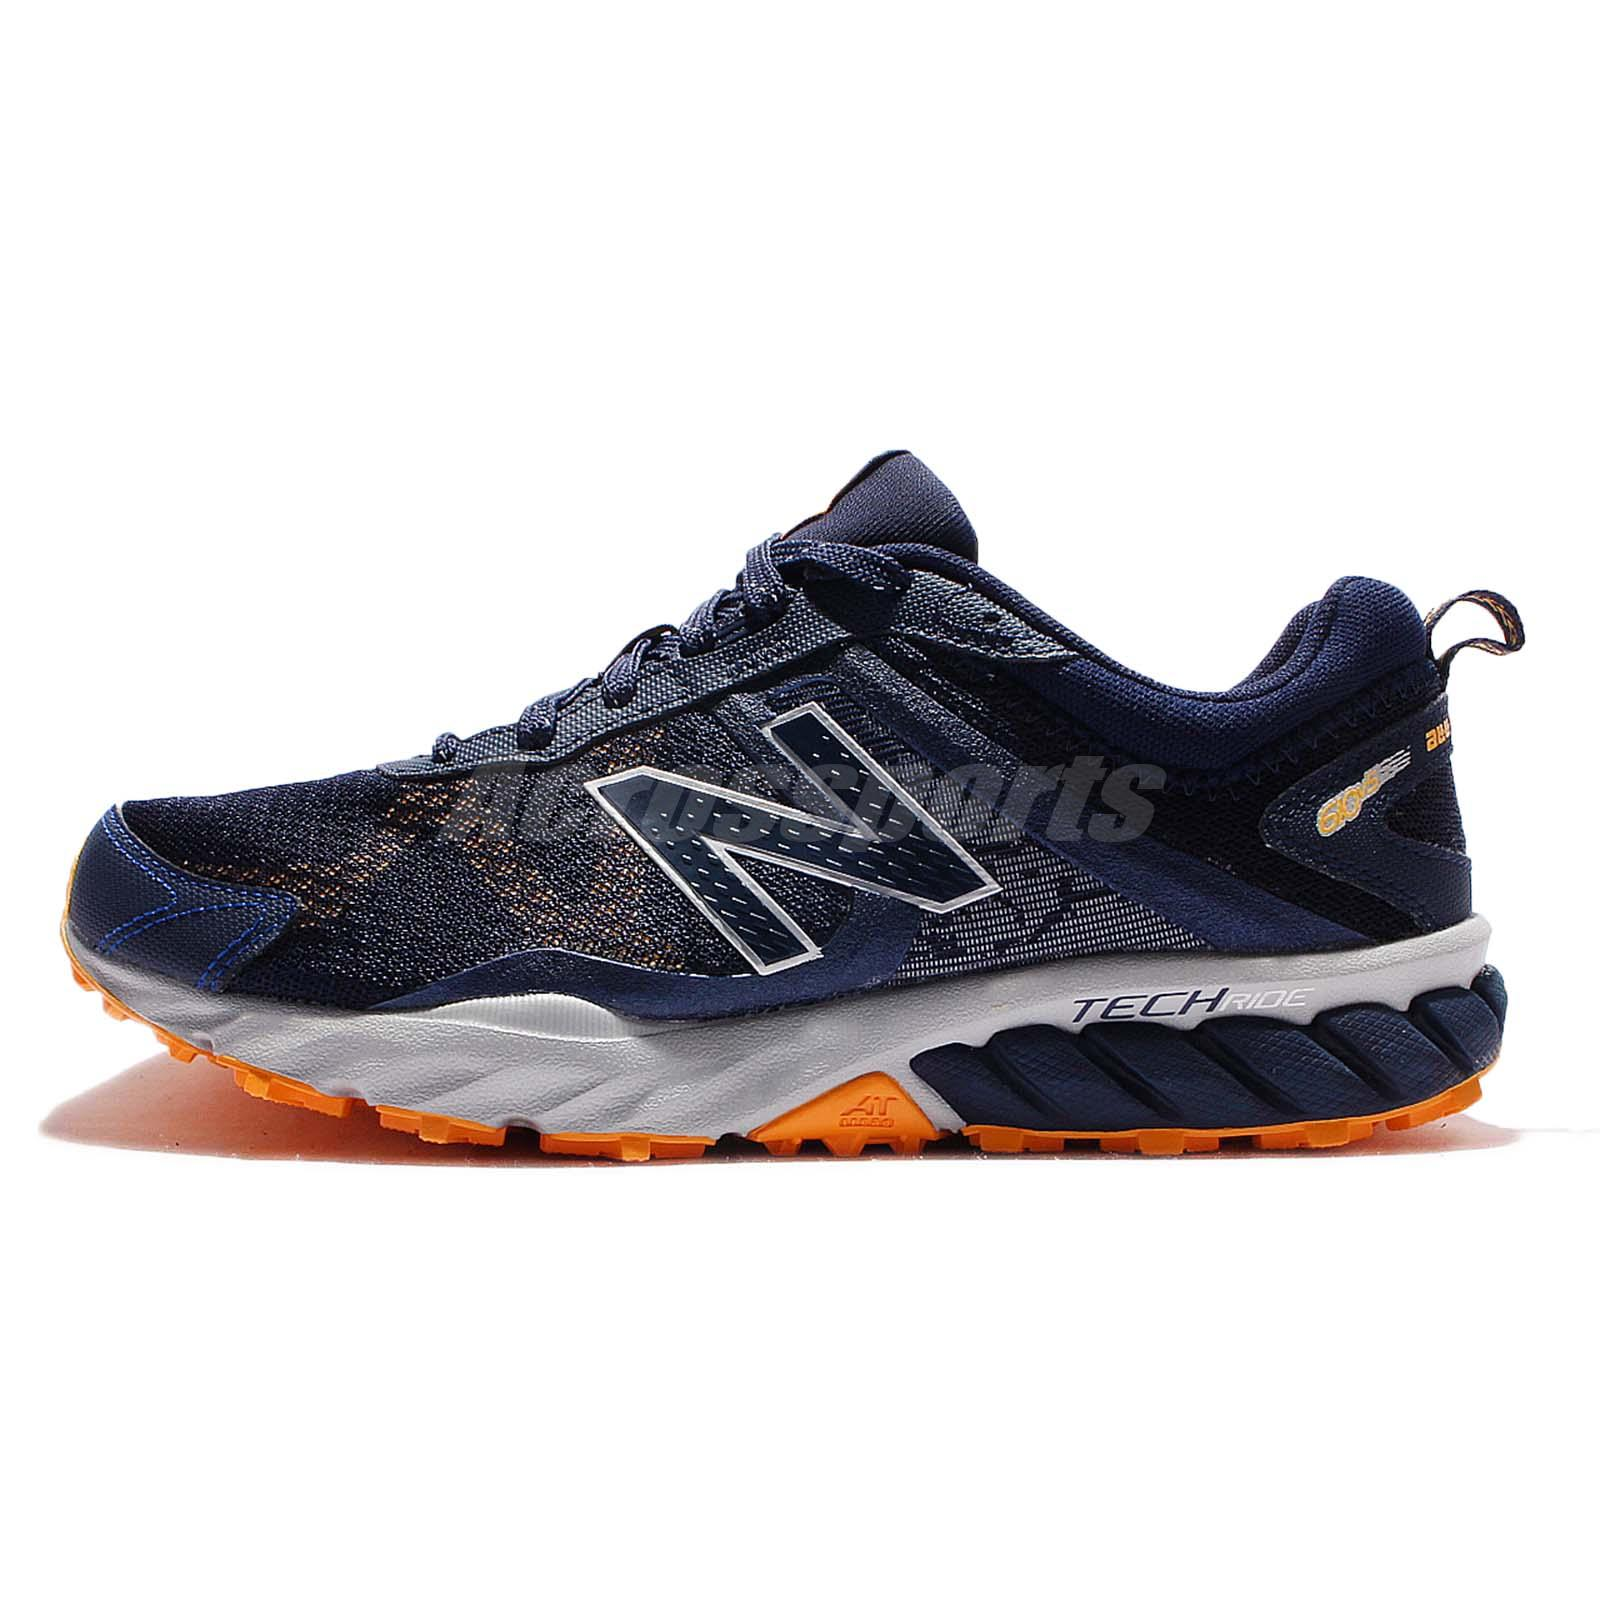 New Balance Trail Running Shoes Philippines